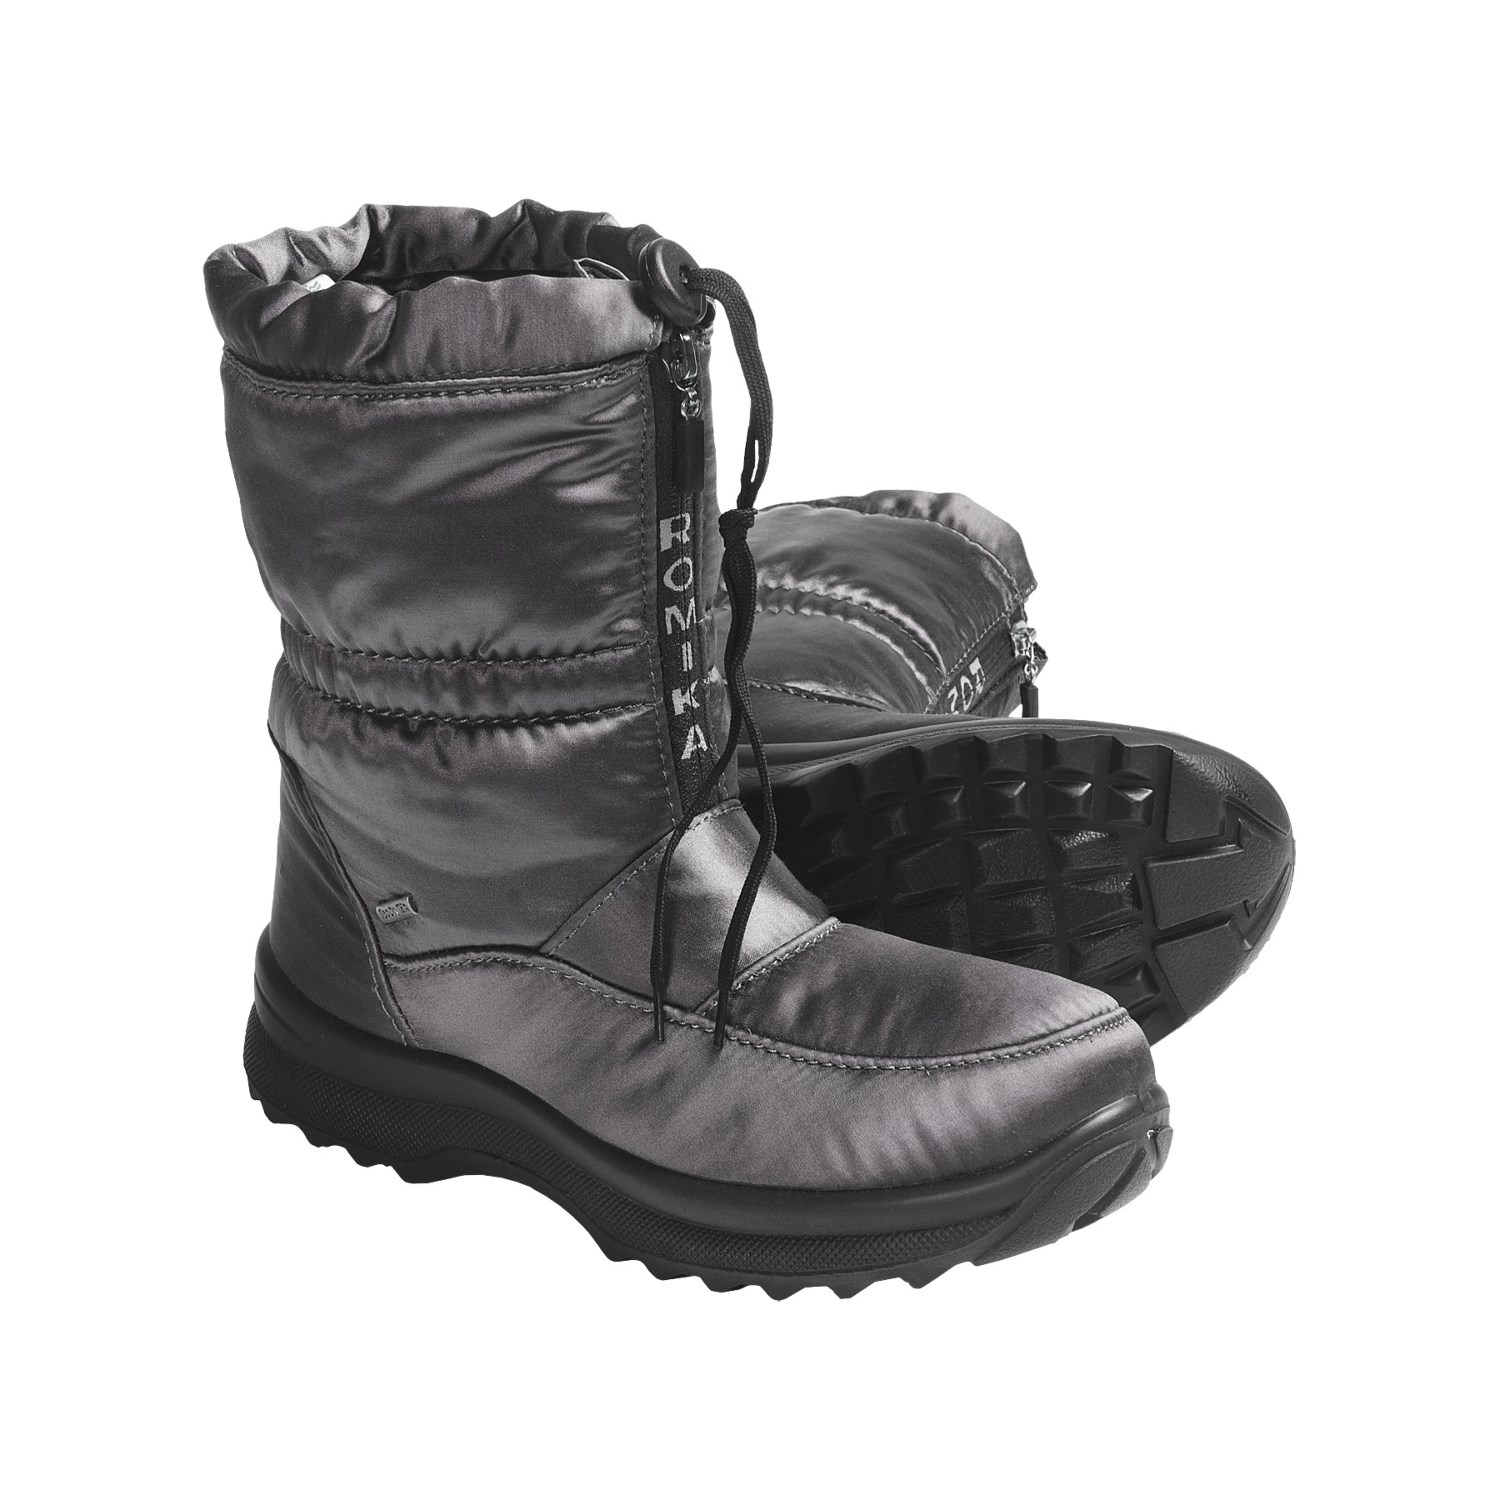 Colorado Insulated Boots